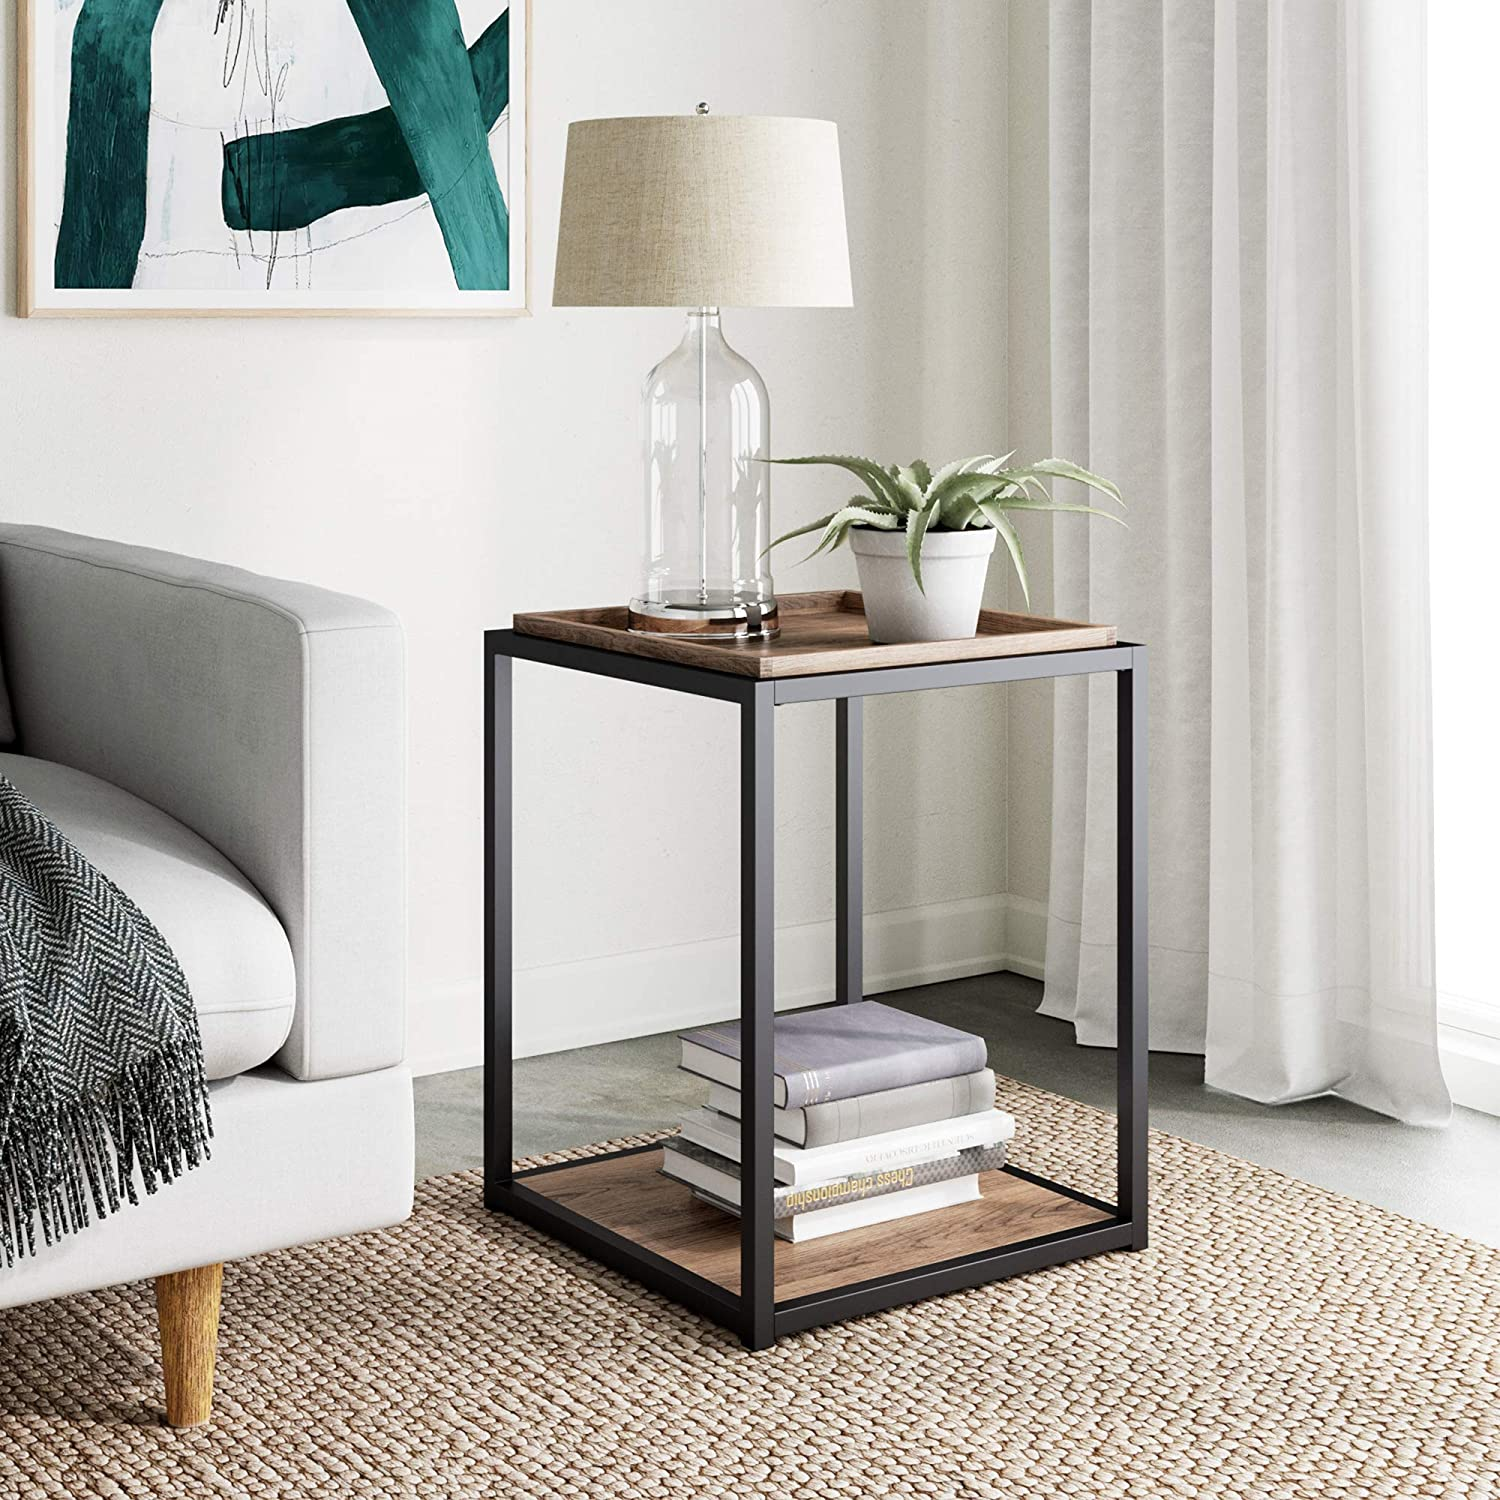 Nathan Popular popular James Nash All items free shipping Modern Industrial Accent End wit Side Table or